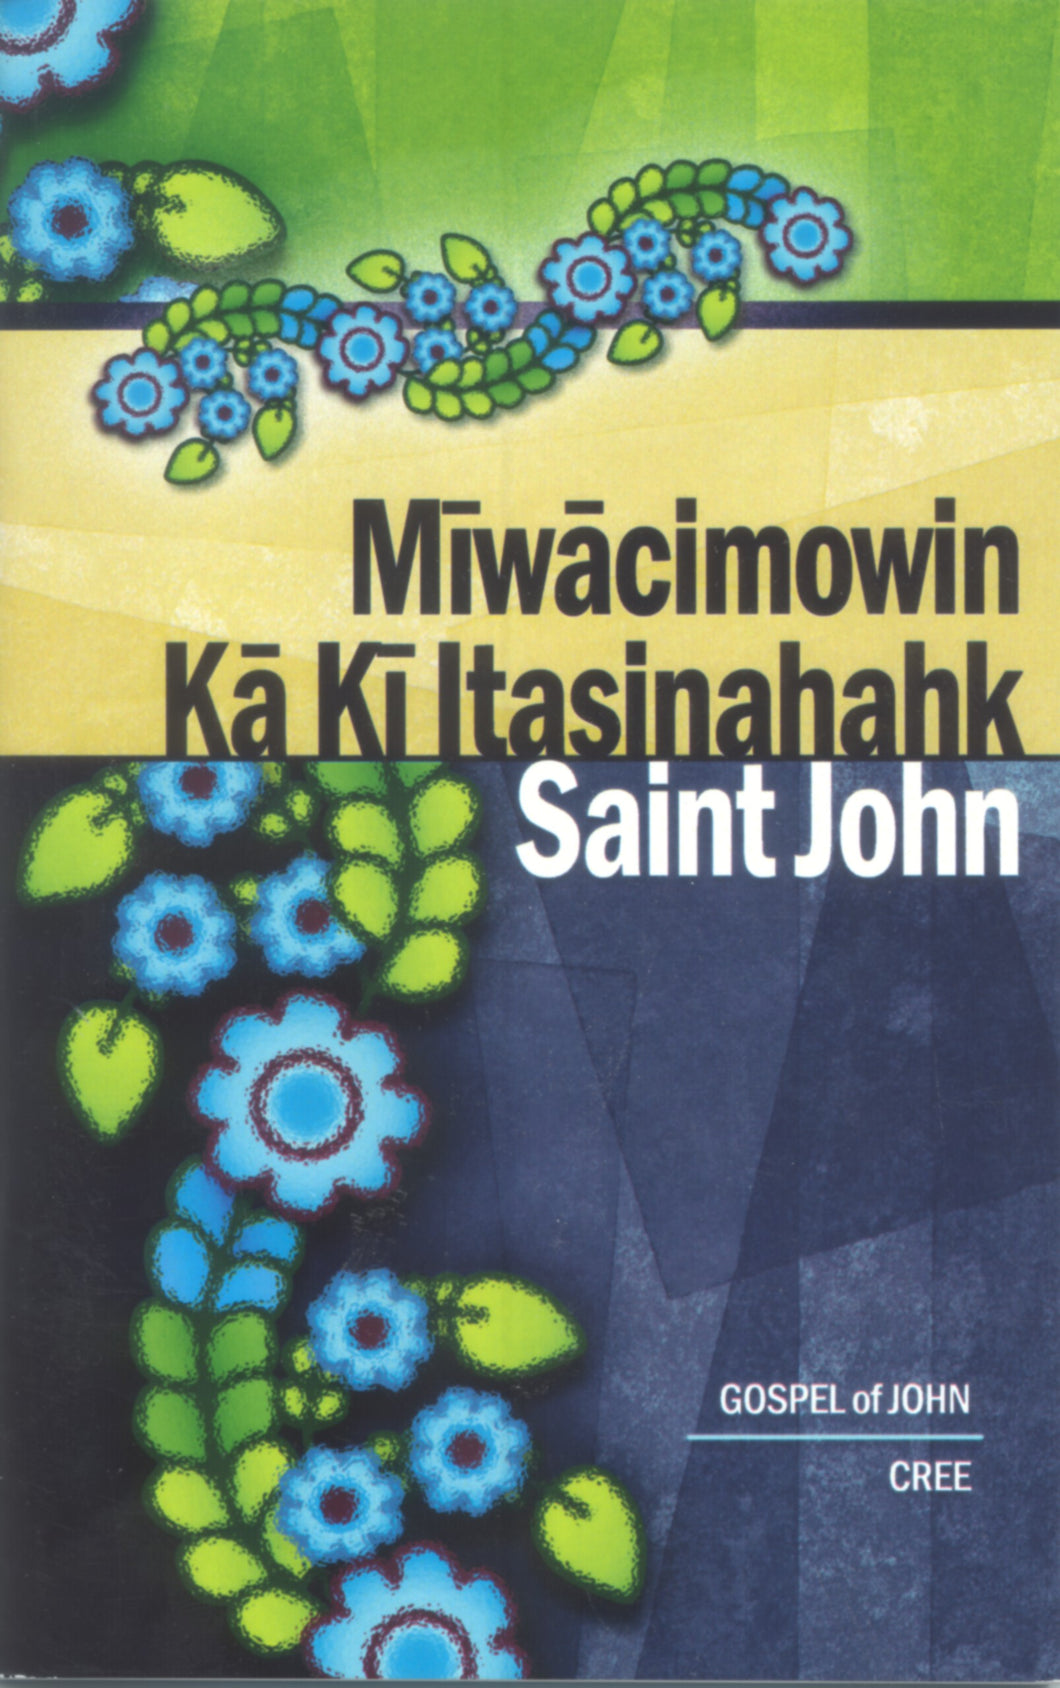 Cree language - Gospel of John in Cree Phonetics